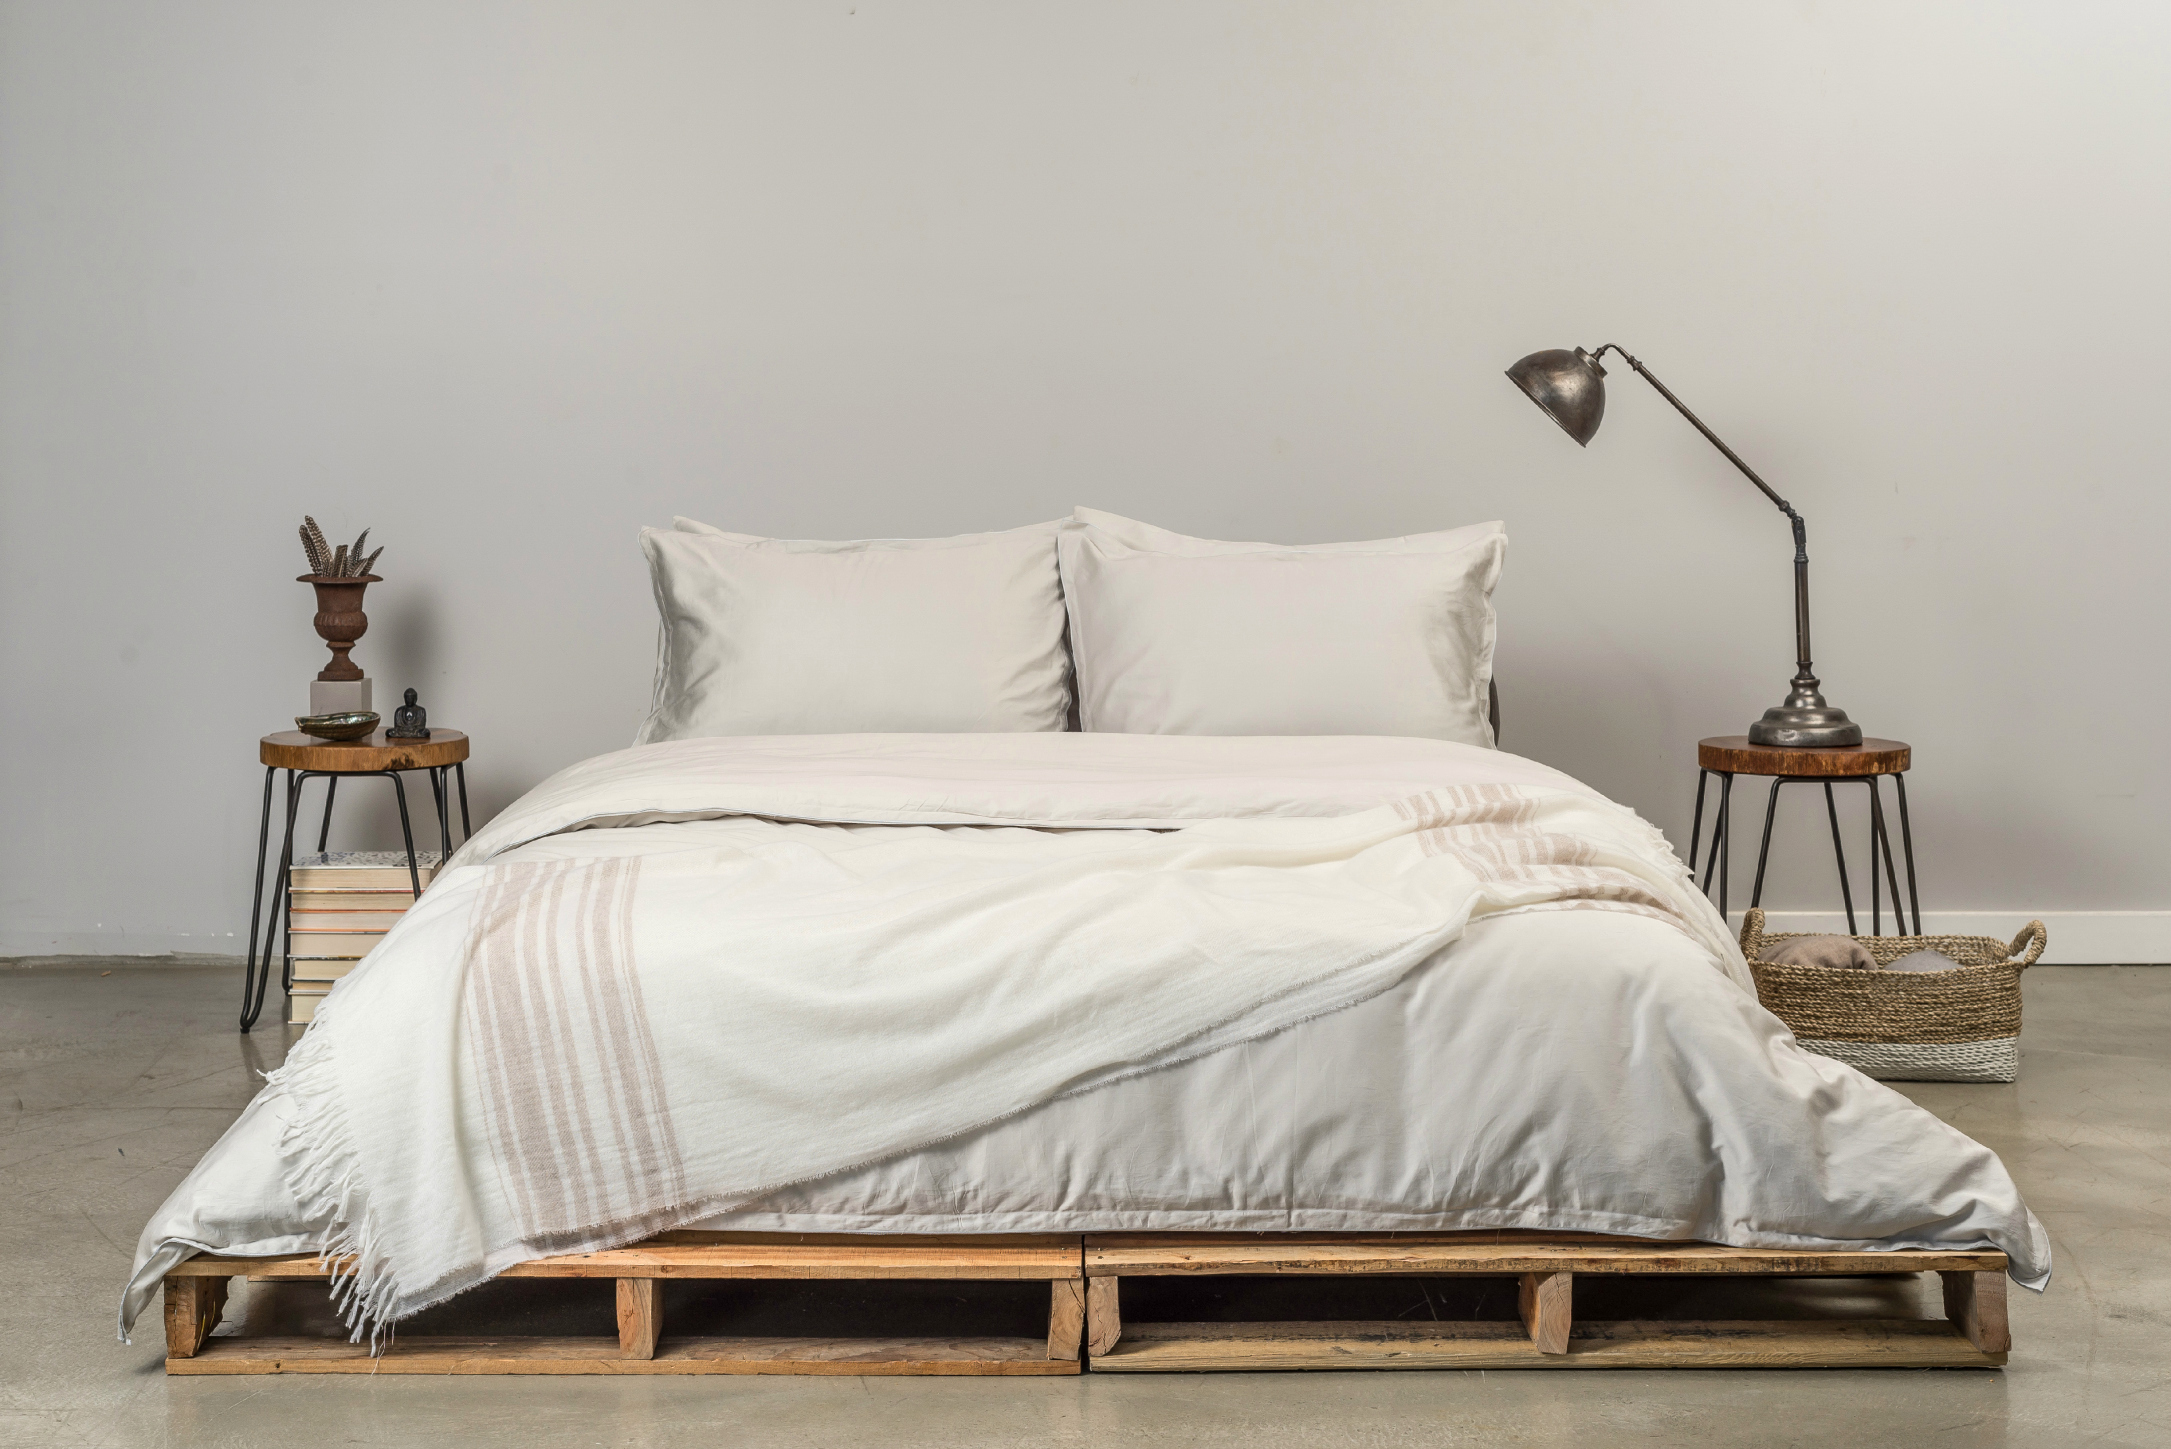 Beautiful 9 Truths About Bedding: How To Use Your Sheets To Get A Good Nightu0027s Sleep